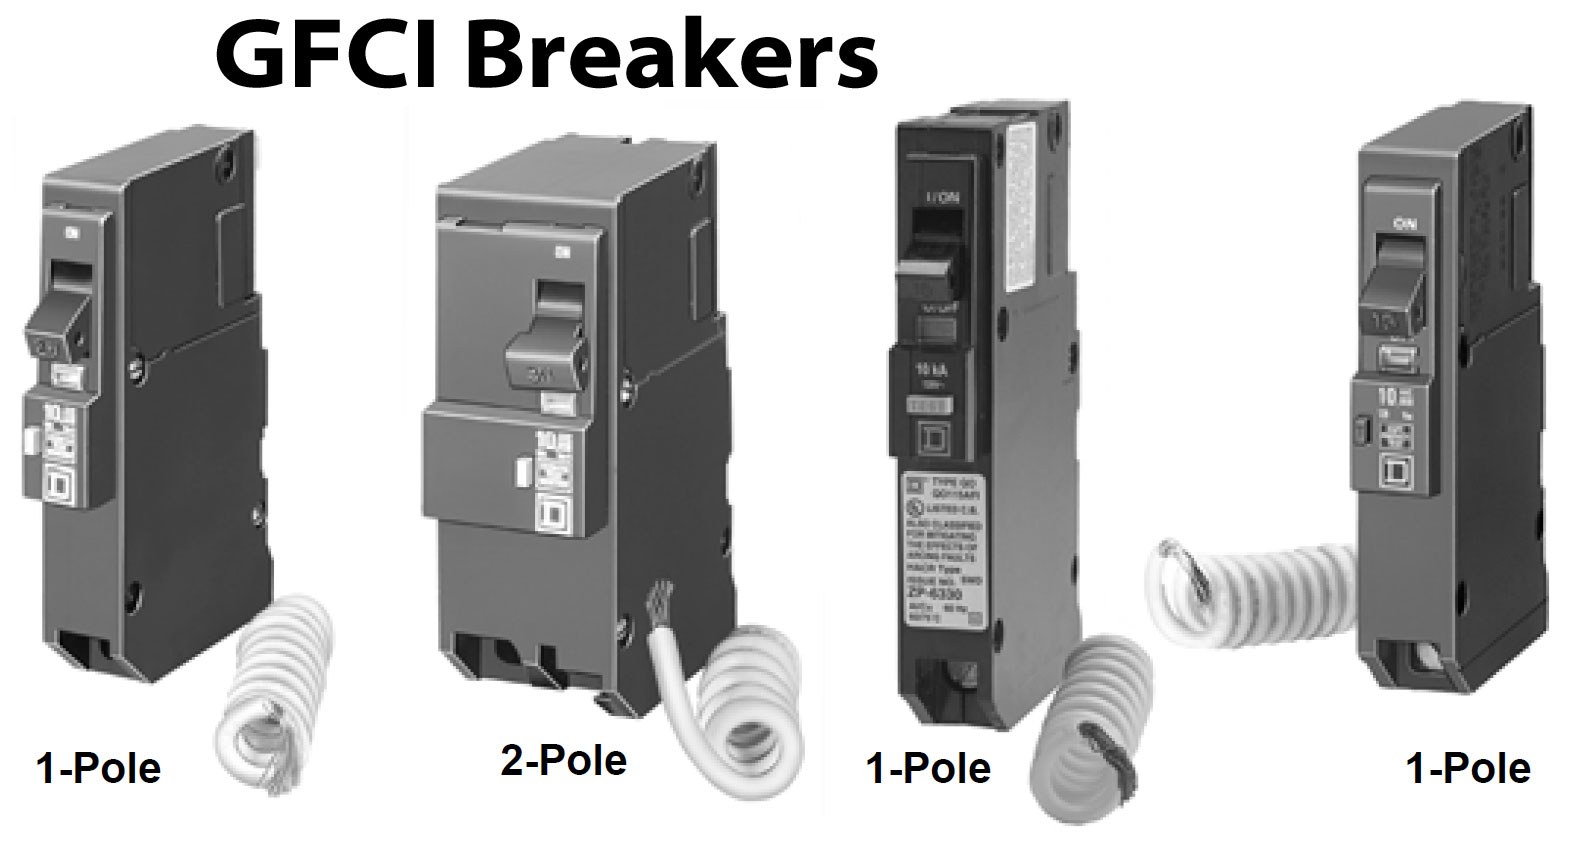 GFCI breakers 1000 how to install and troubleshoot gfci eaton gfci breaker wiring diagram at pacquiaovsvargaslive.co